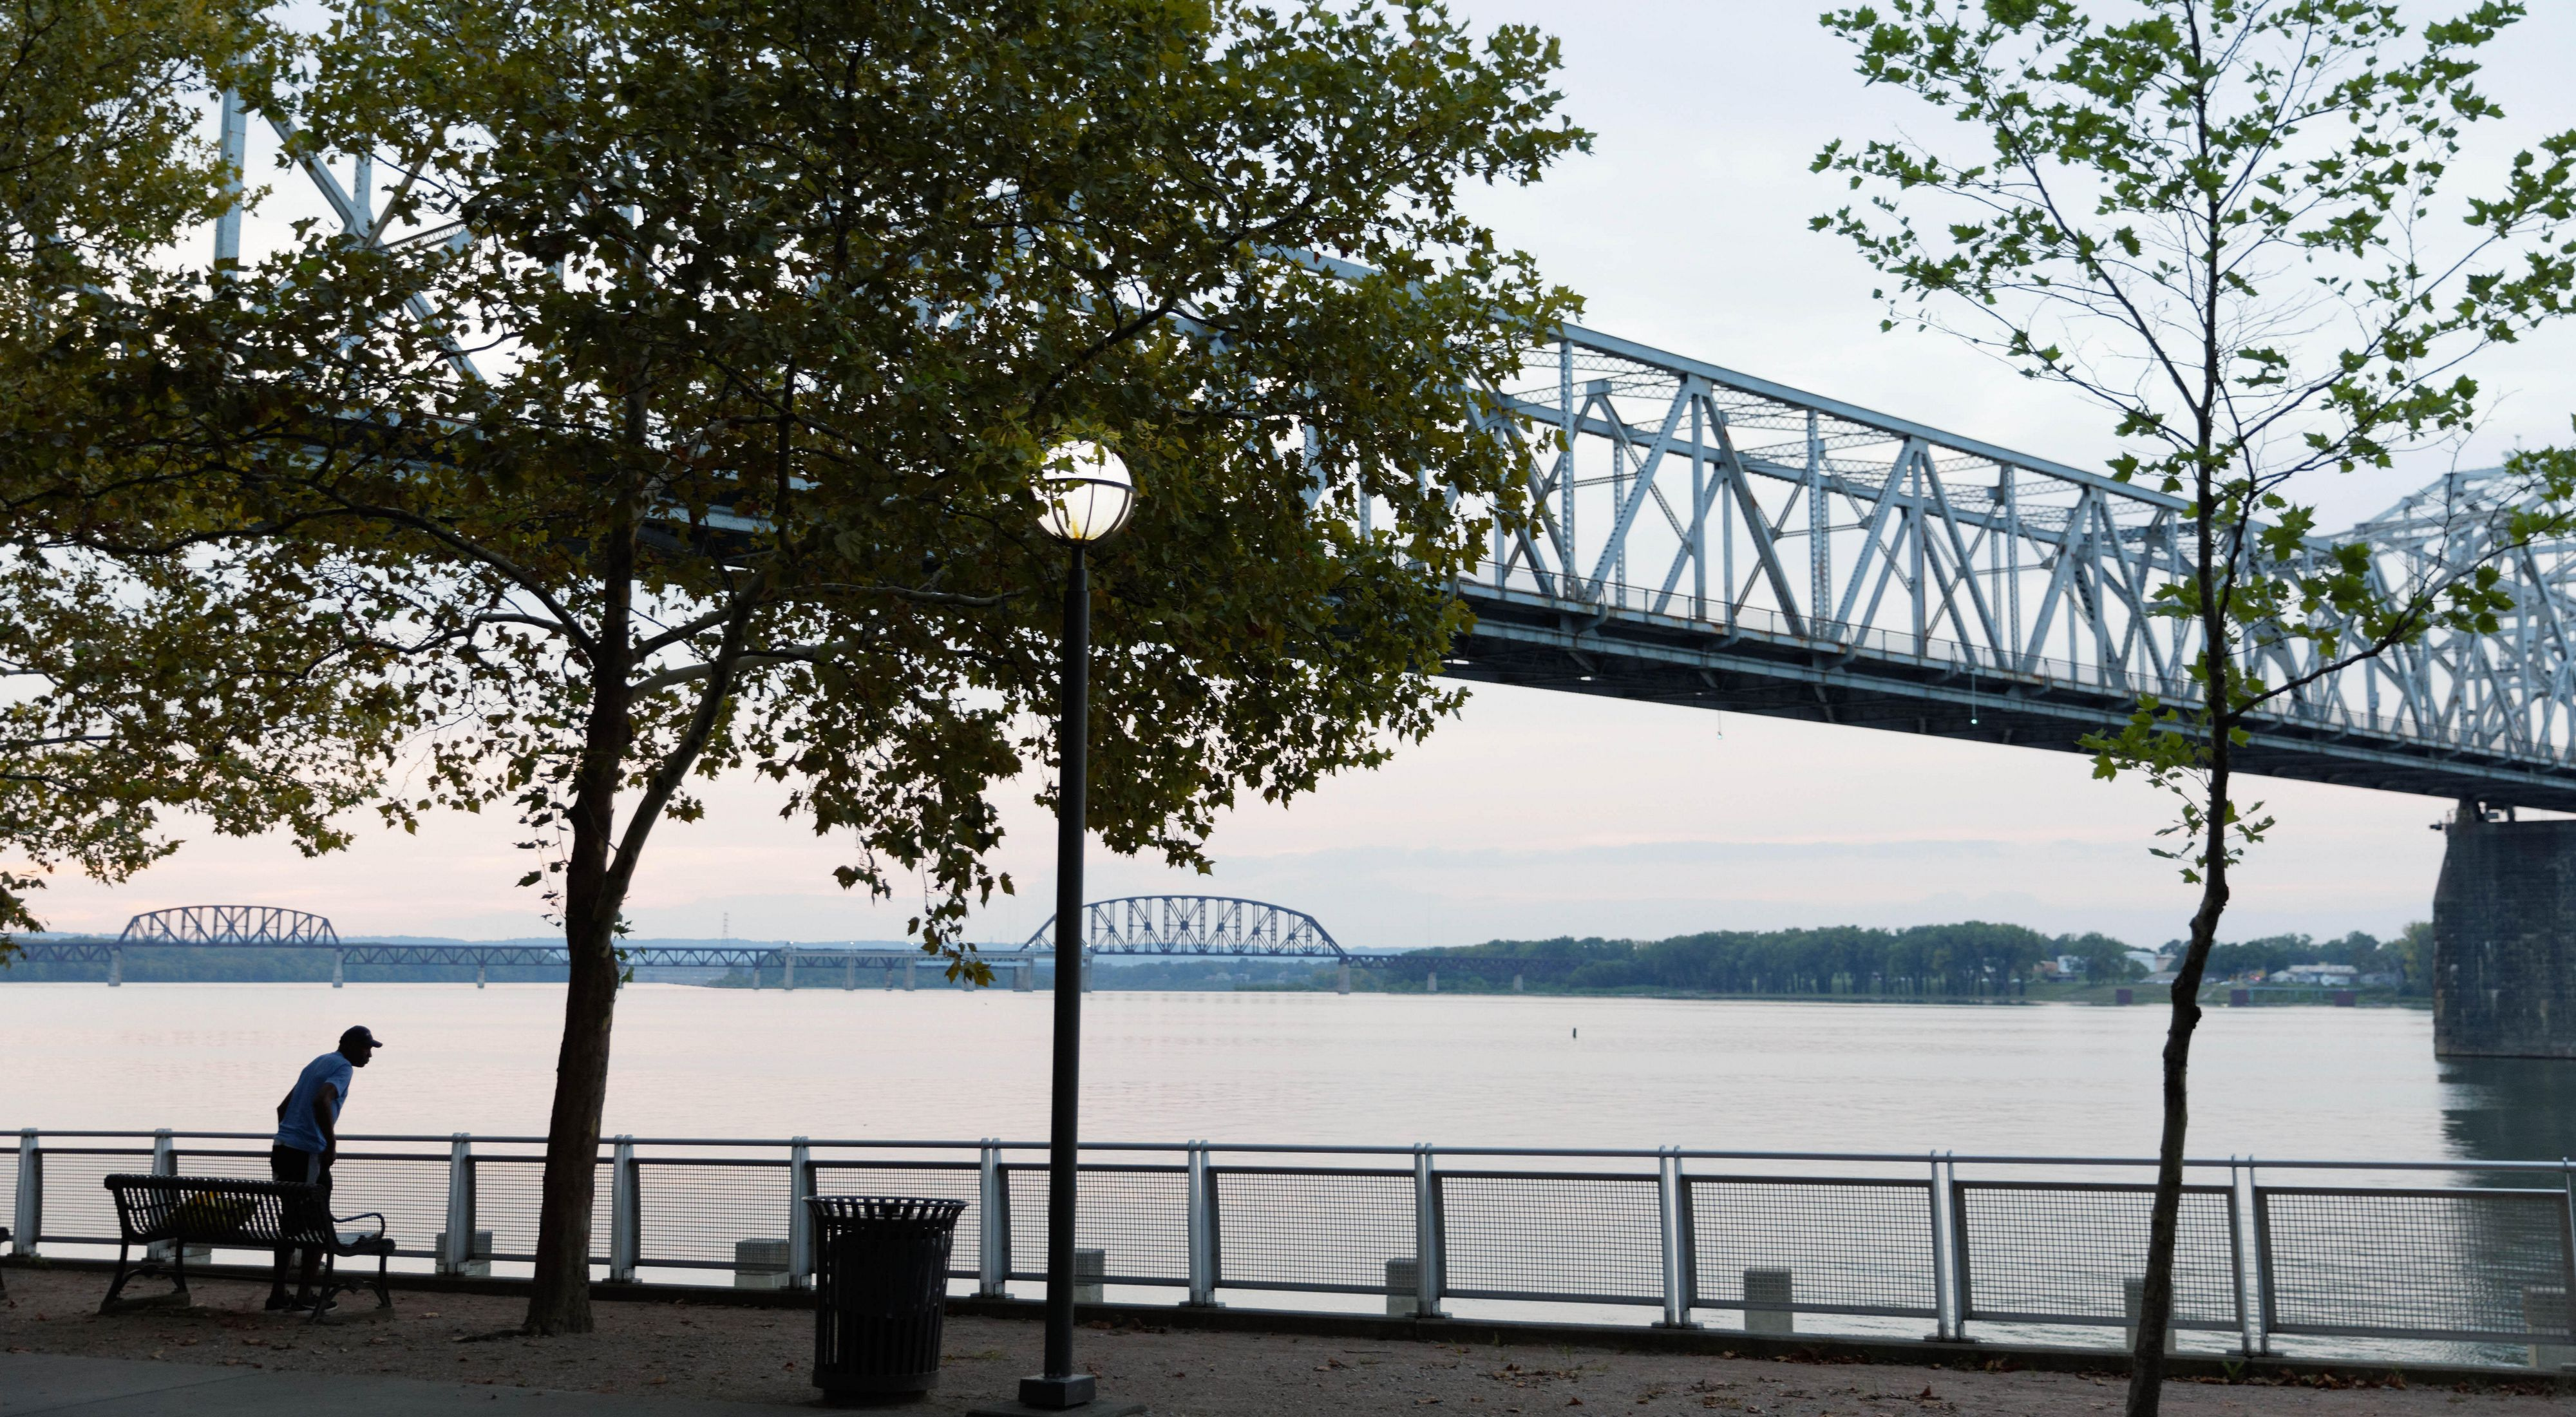 Photo of a steel bridge crossing the Ohio River, with a riverside park in the foreground.